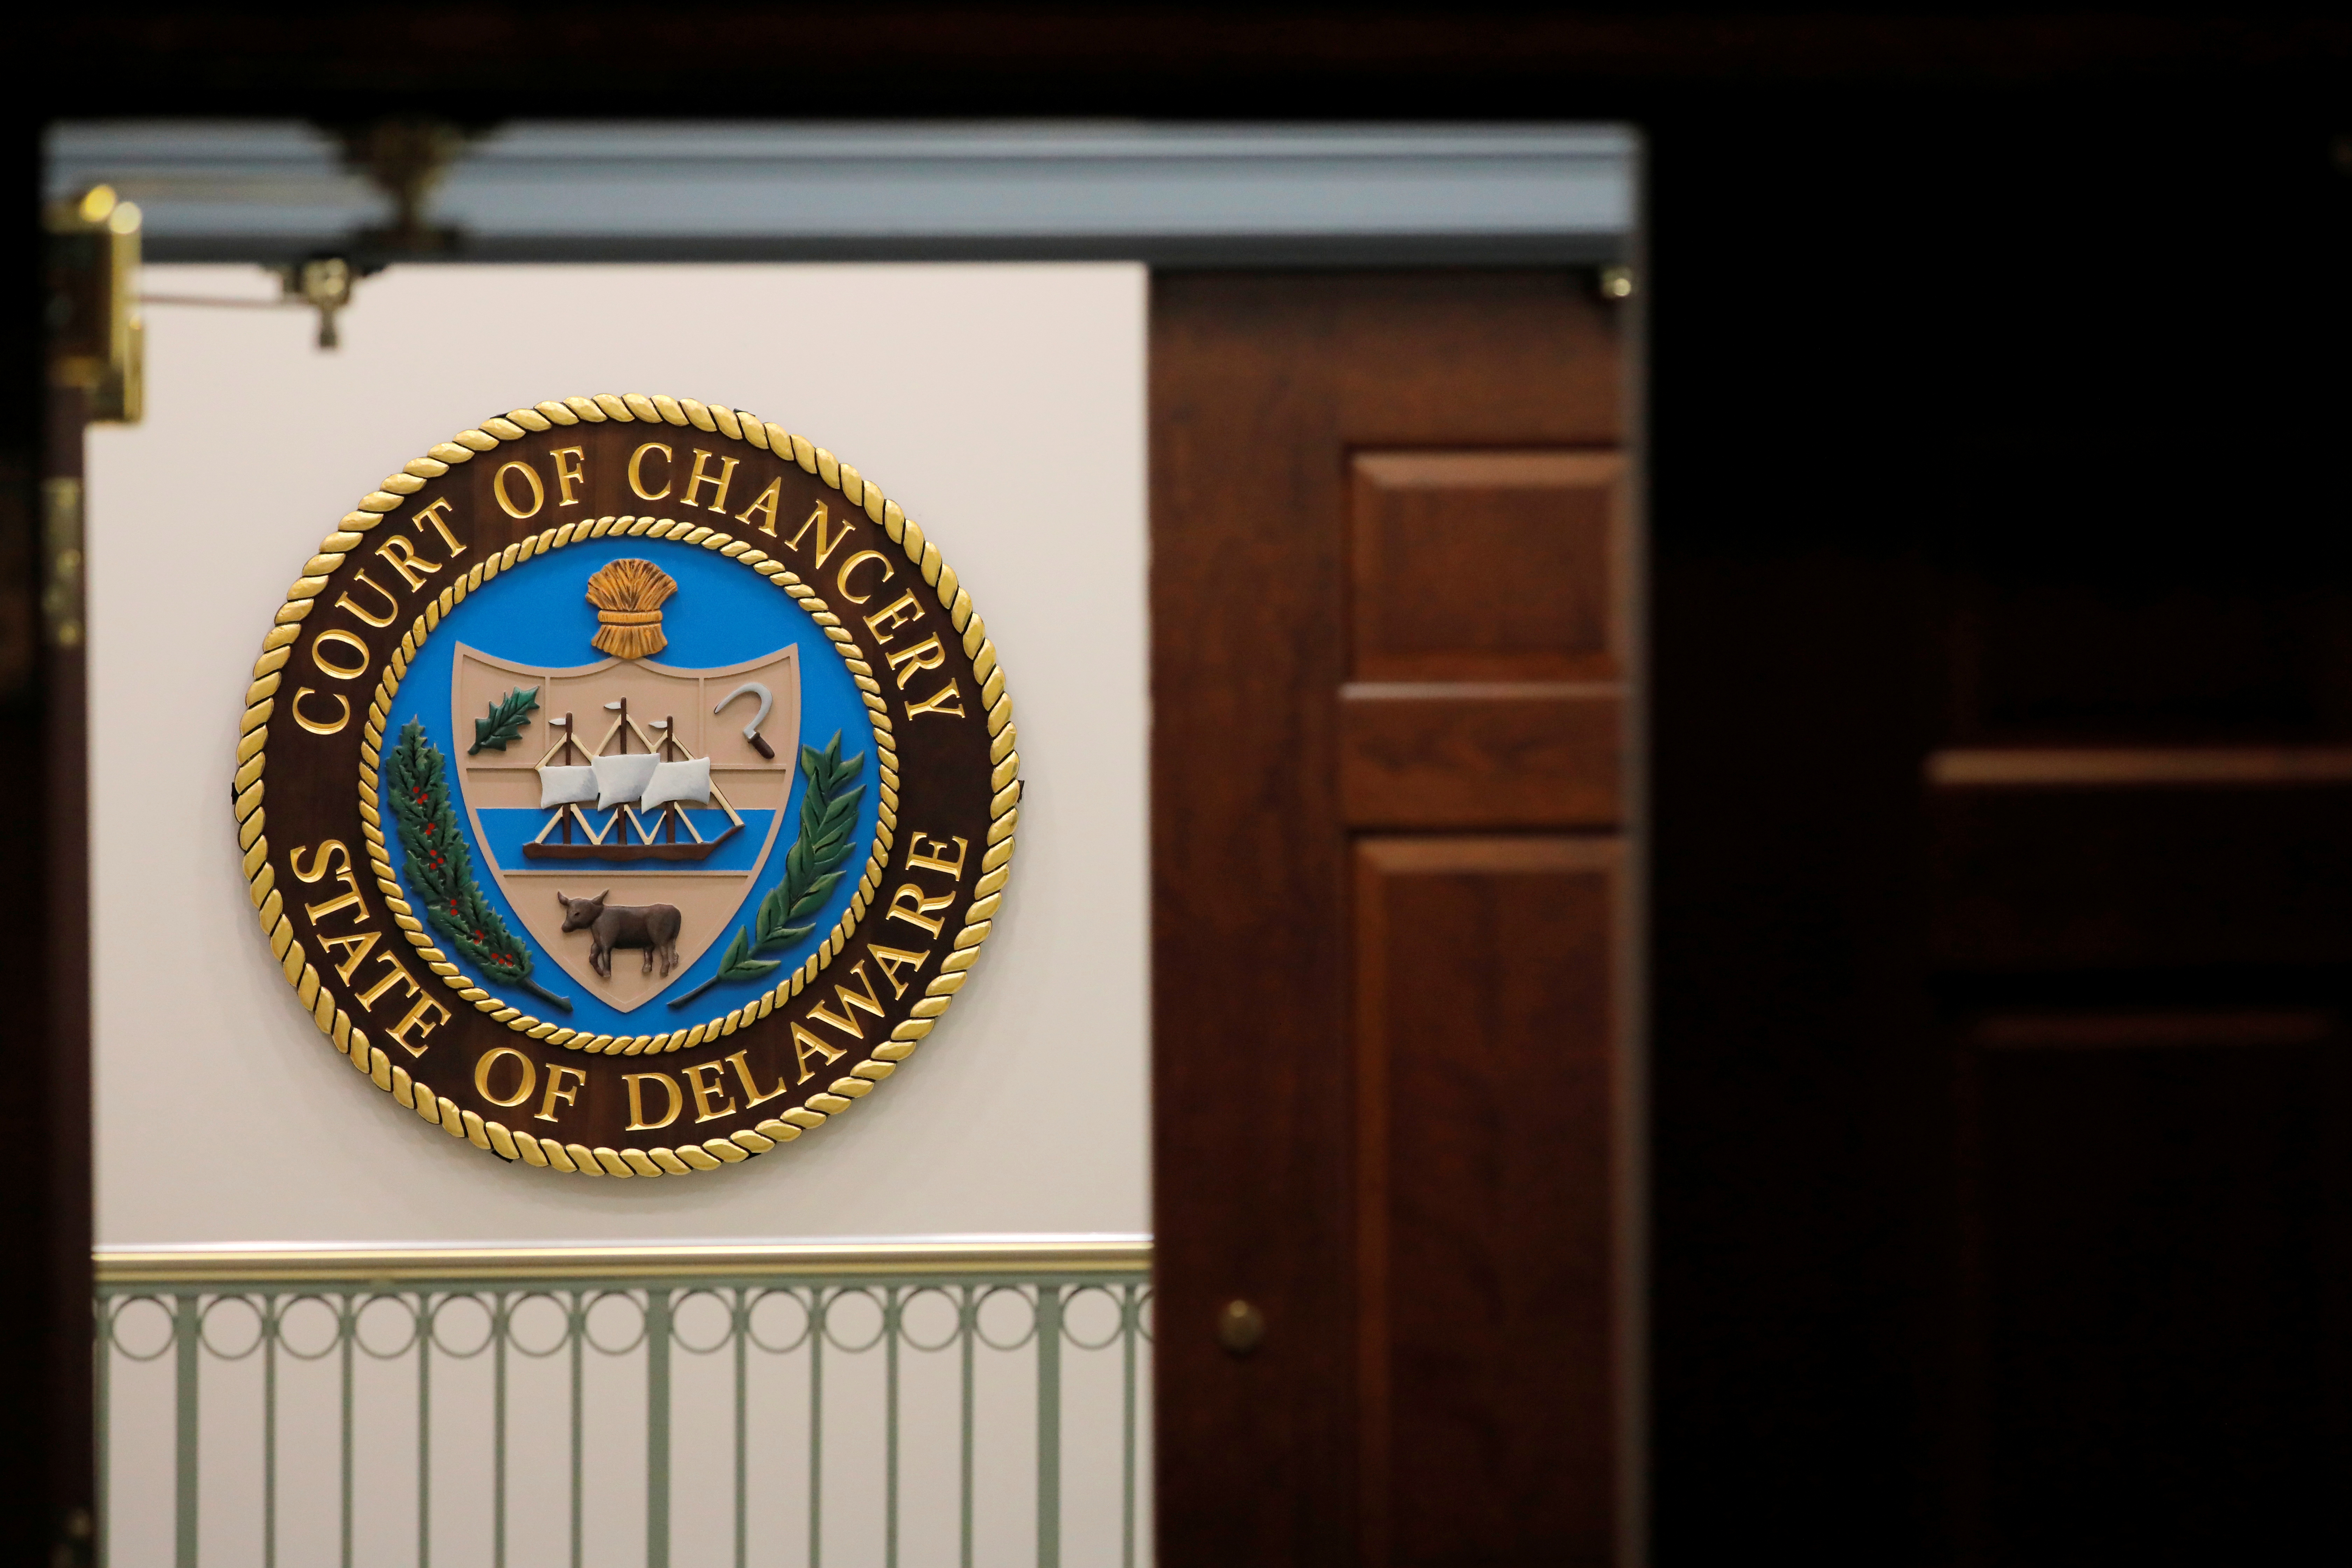 The seal of the Court of Chancery for the State of Delaware is seen on a wall in the Sussex County Court of Chancery in Georgetown, Delaware. REUTERS/Andrew Kelly